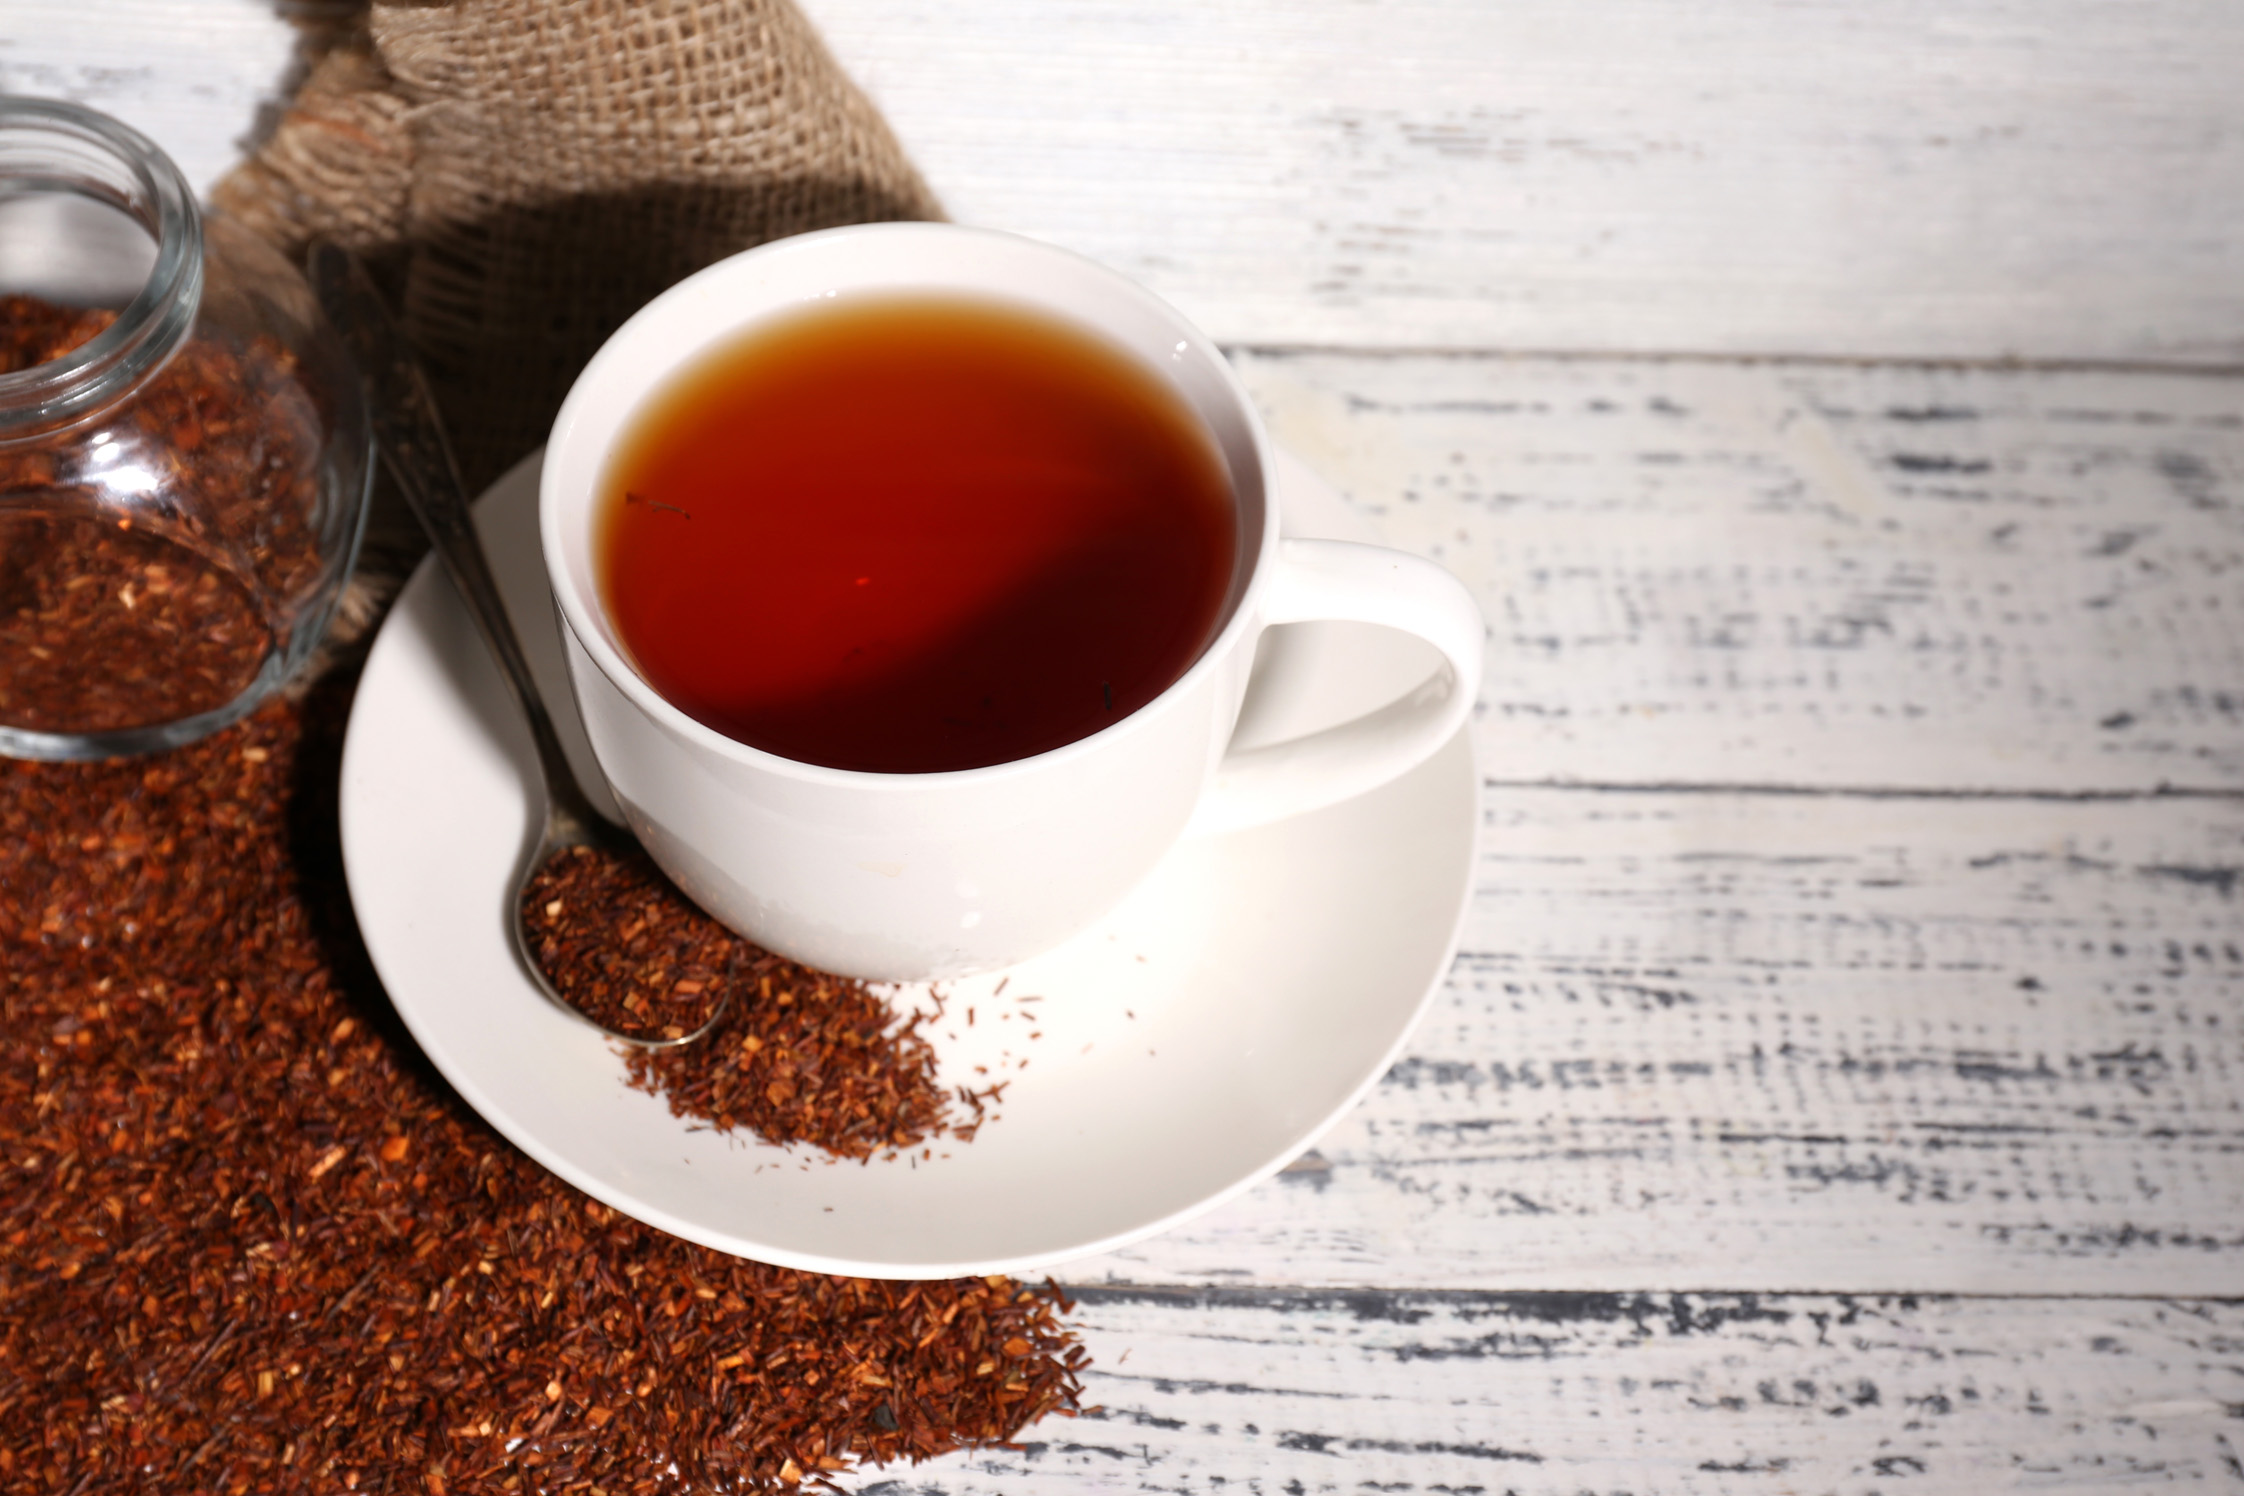 Price of rooibos products set to surge following South African drought